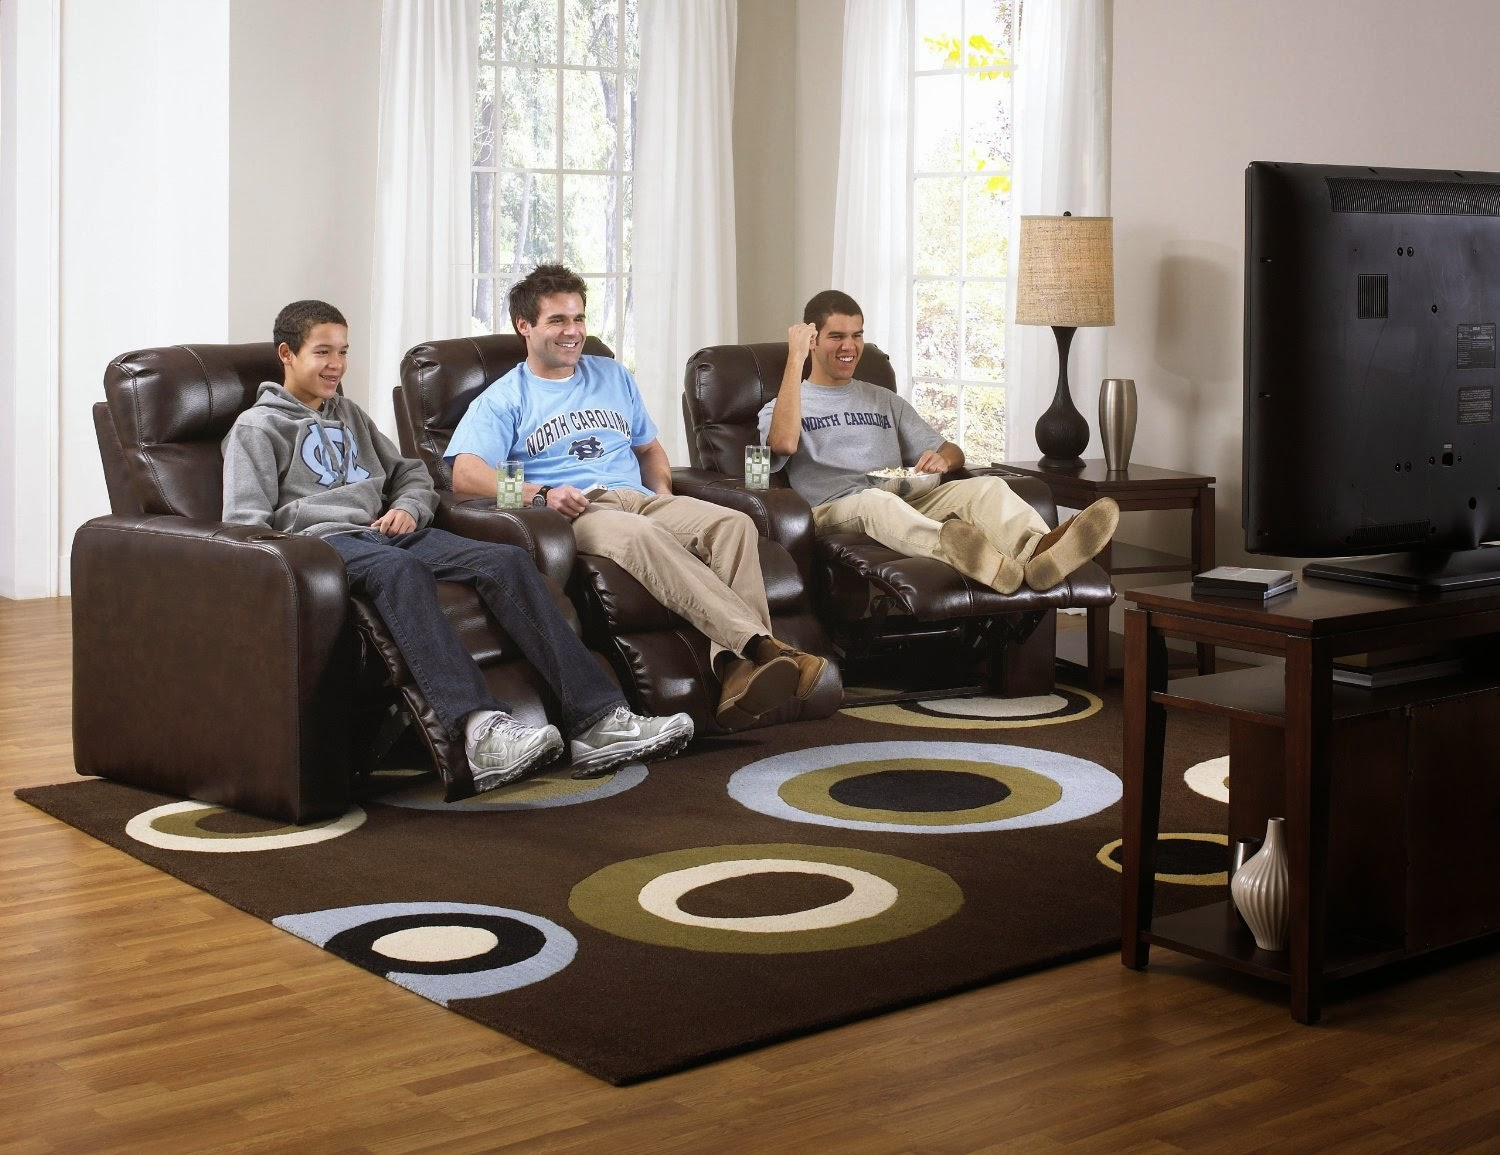 Alliance 3-Seat Curved Leather Recliner Sofa Reviews & Sofa Recliner Reviews: March 2015 islam-shia.org